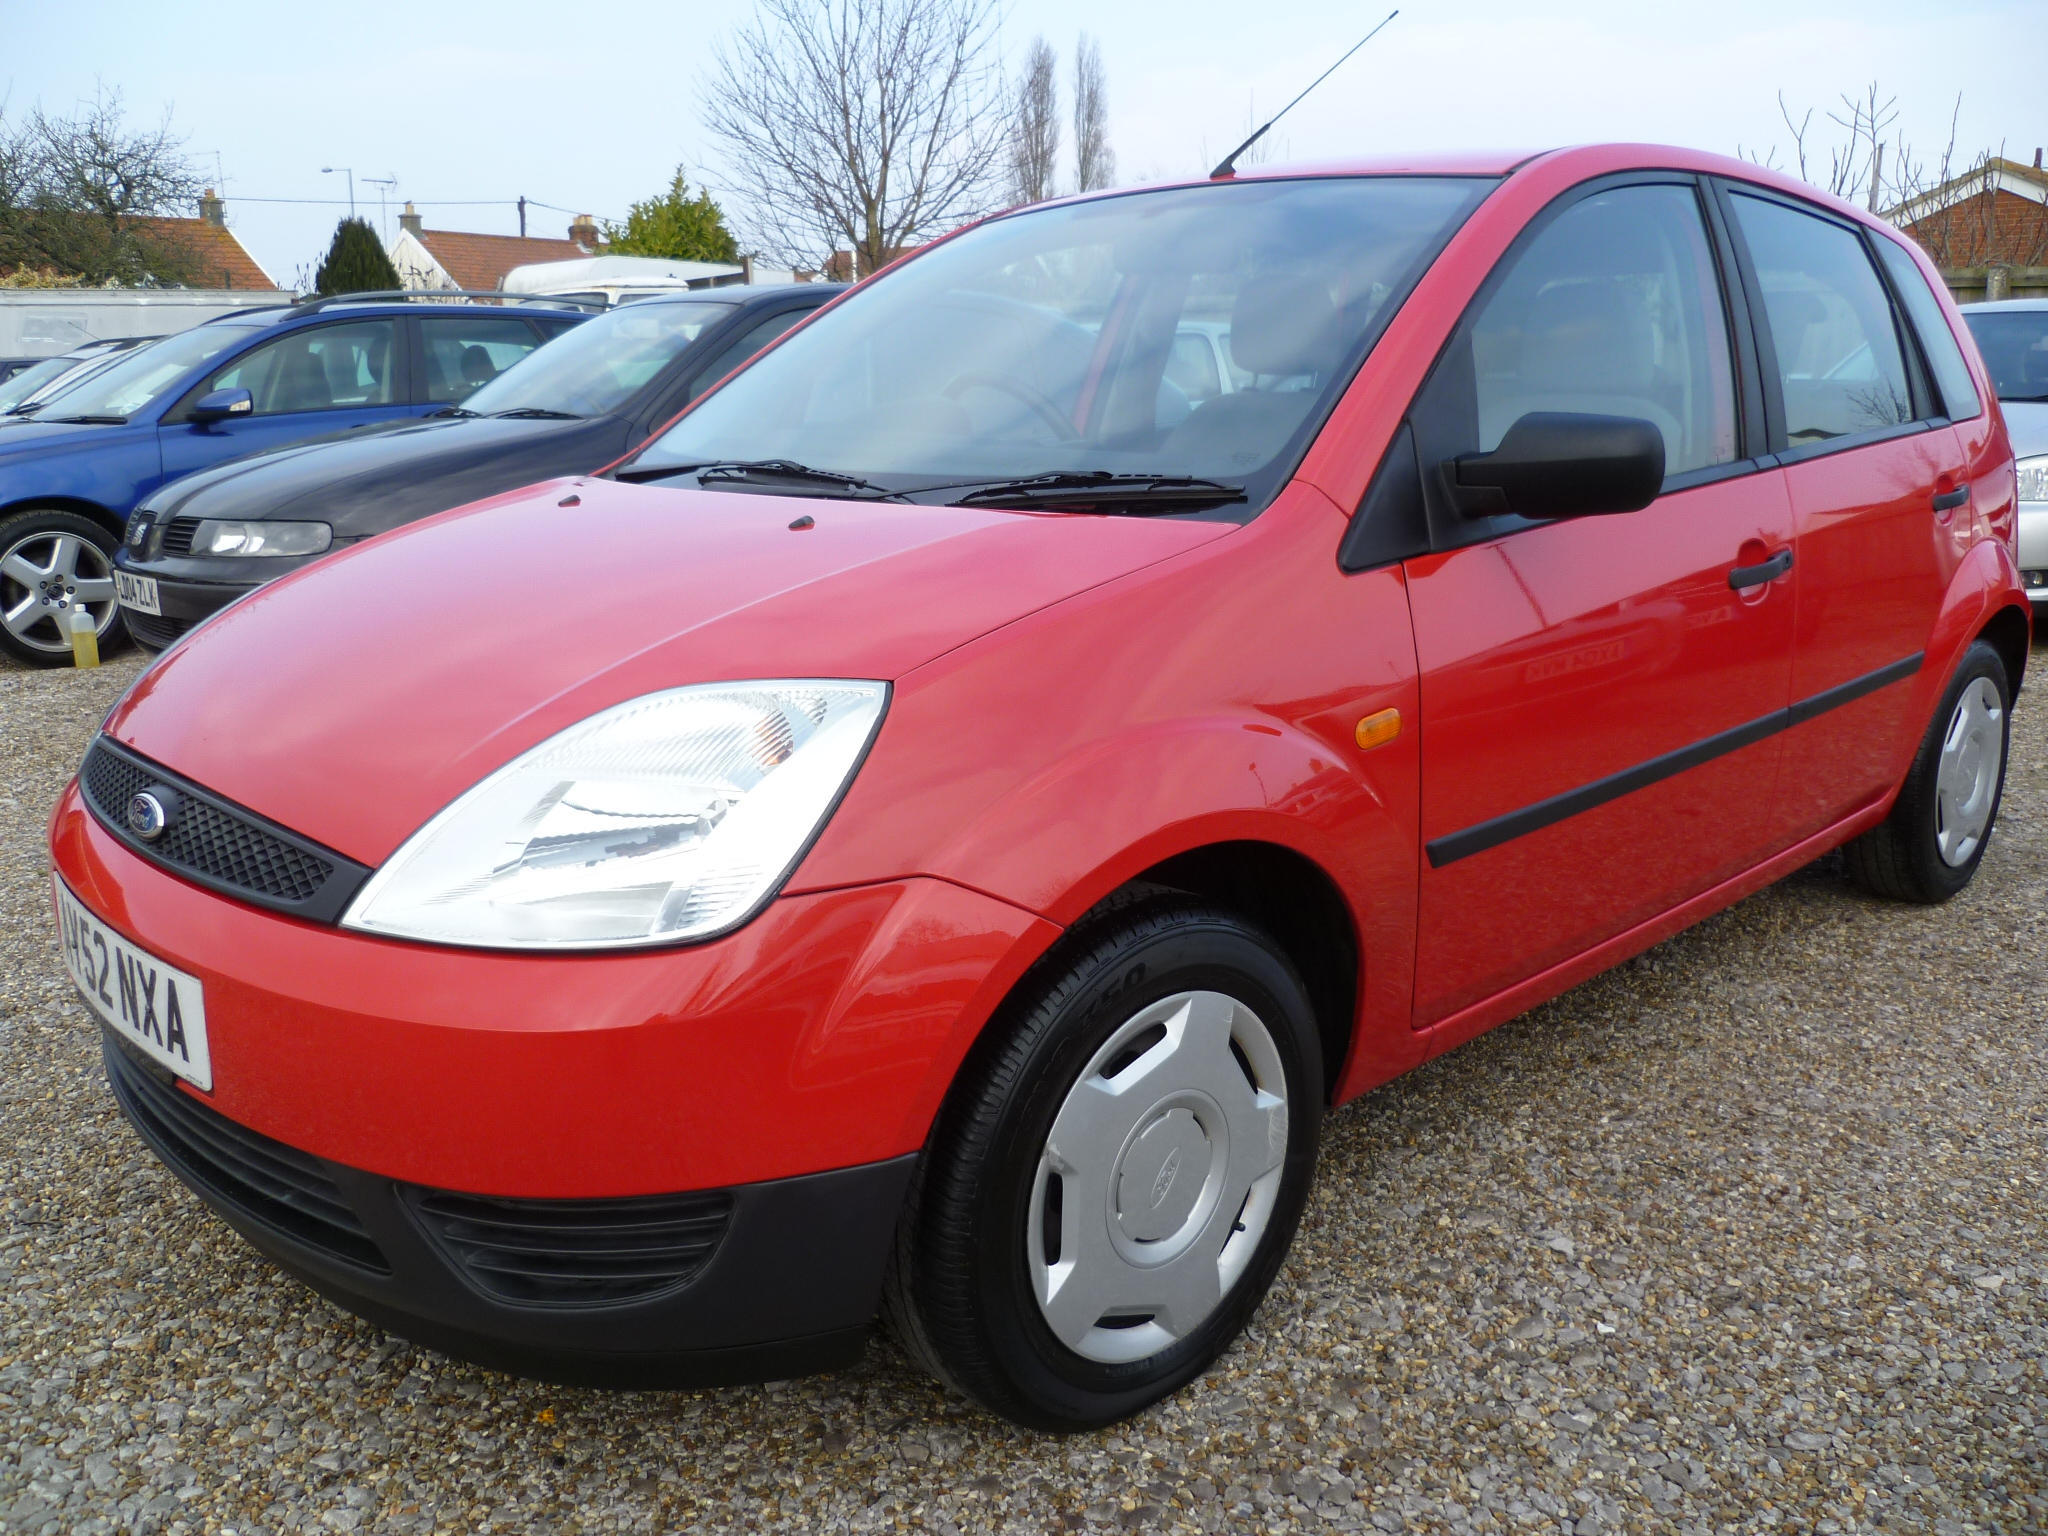 FORD FIESTA 1.3 FINESSE 5DR 008